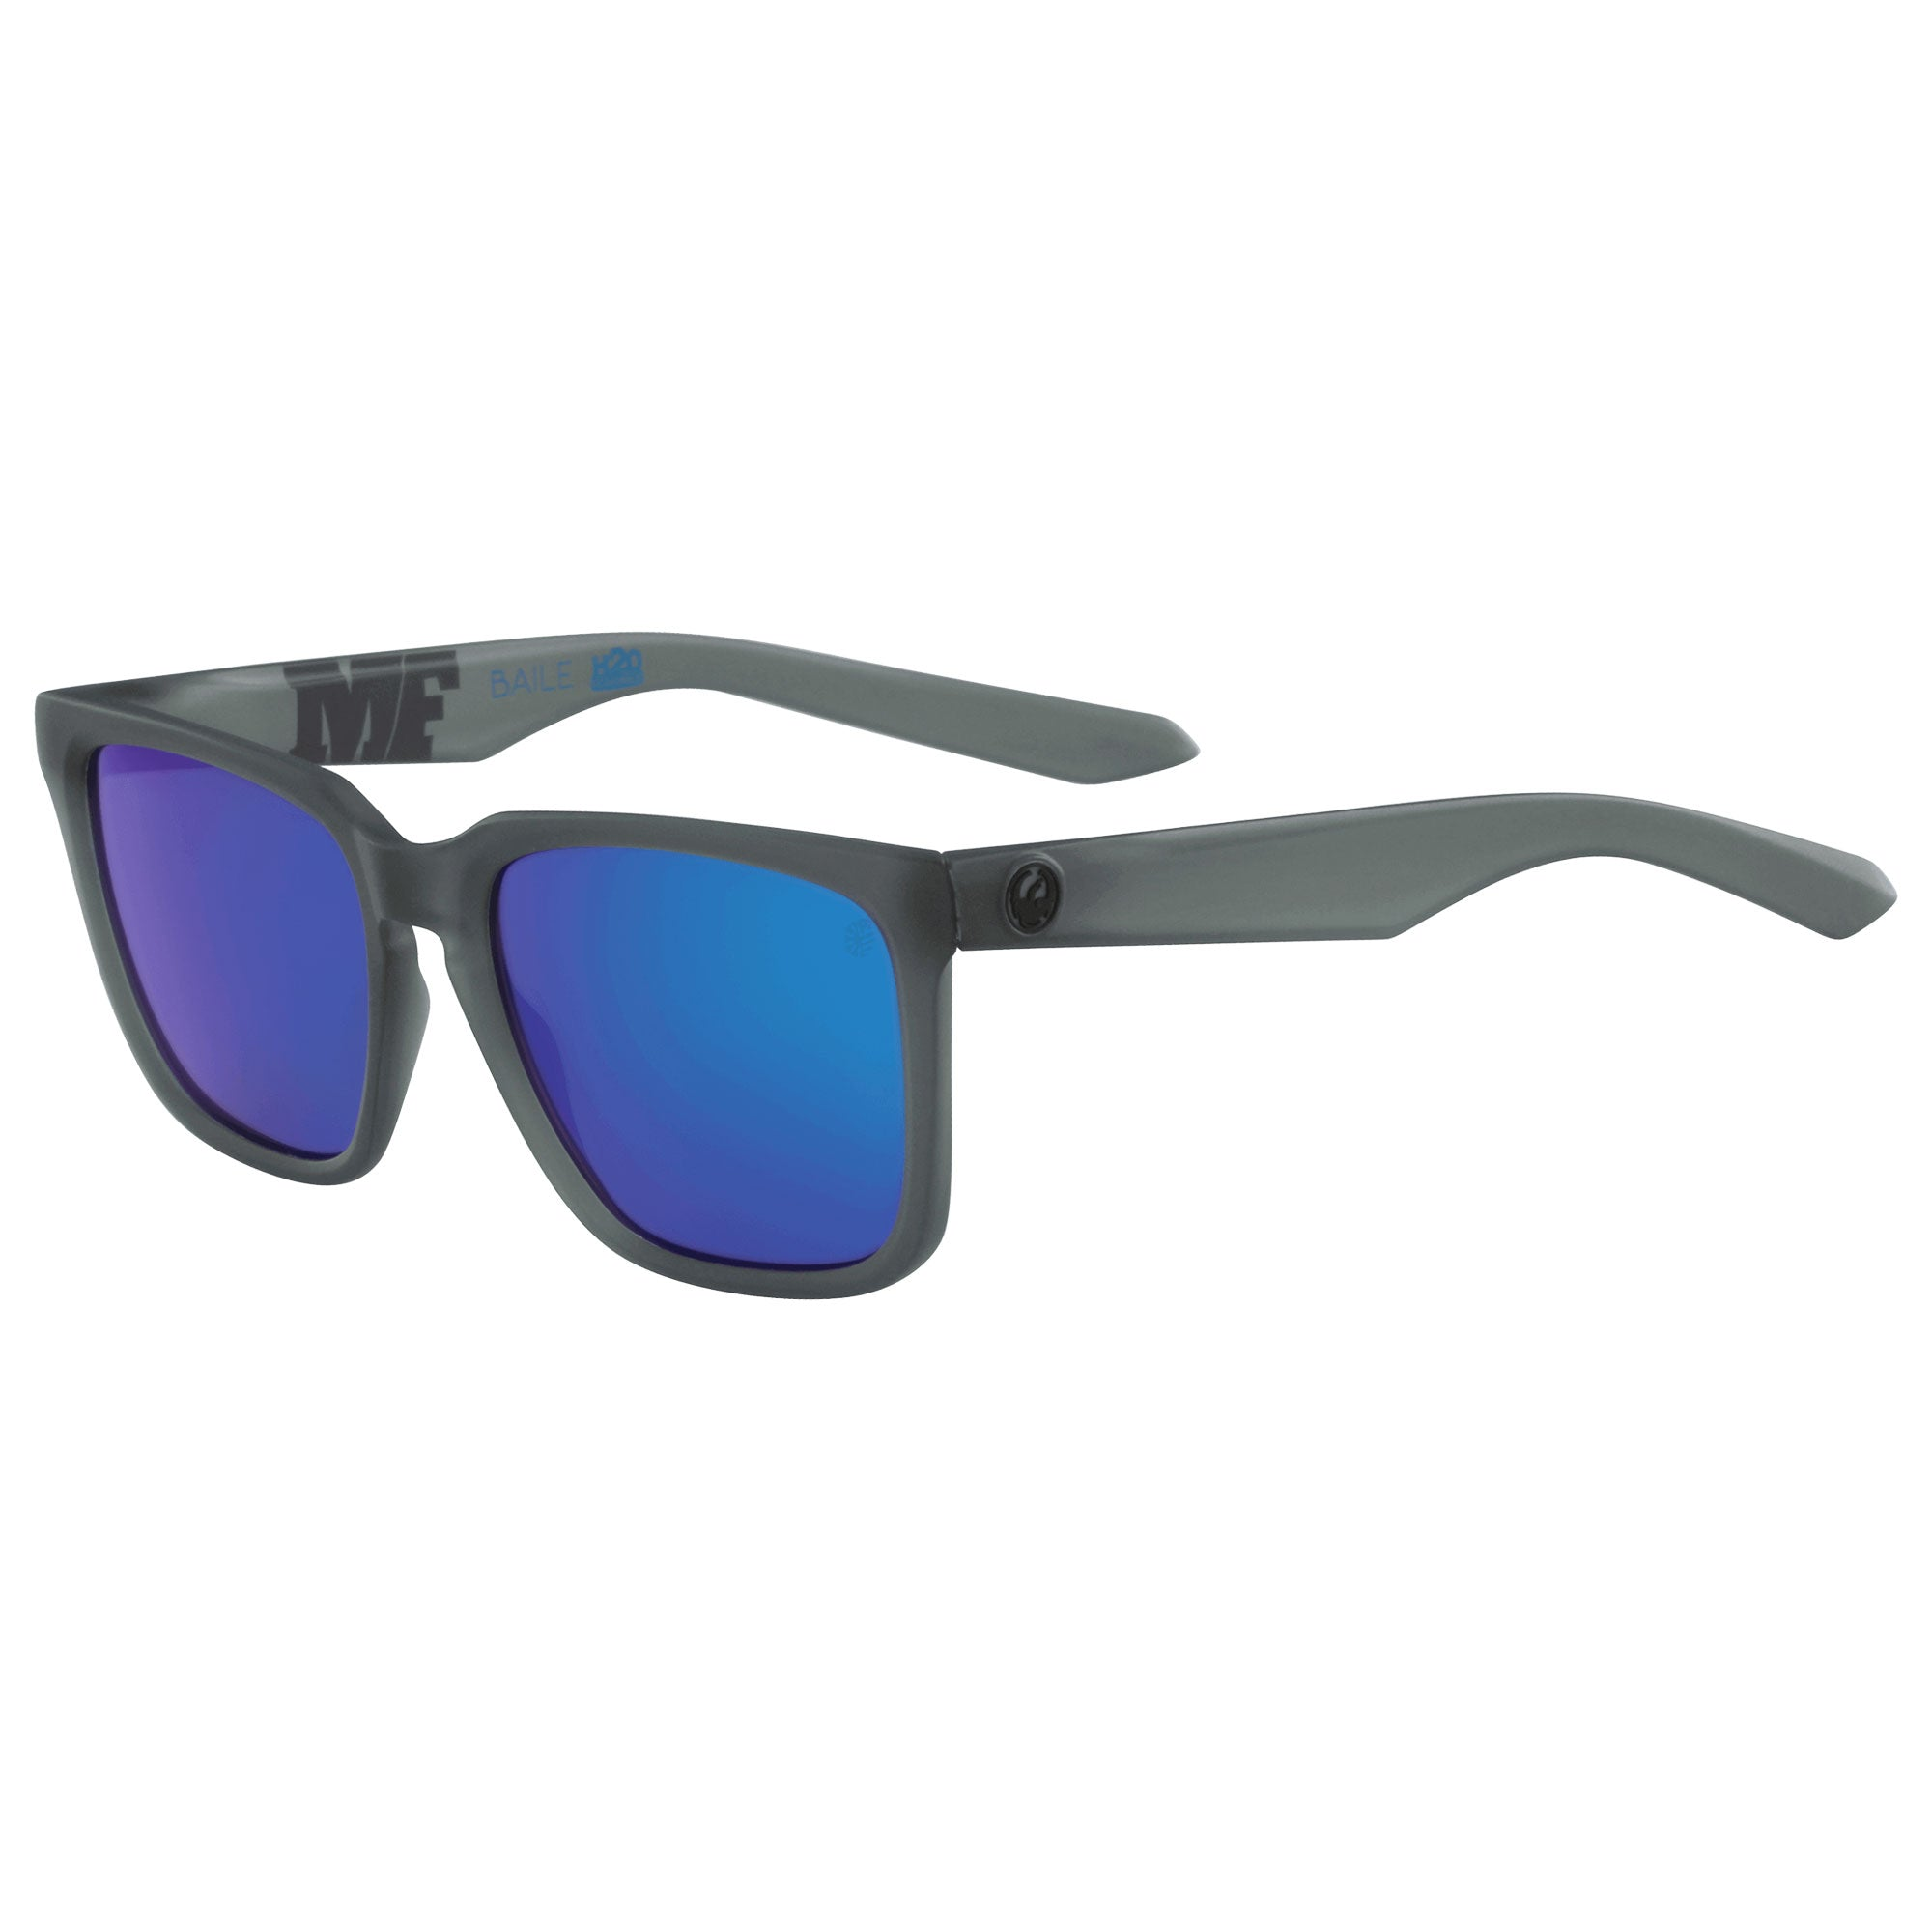 Dragon Baile LL H2O Men's Sunglasses - Matte Crystal Grey/LL Blue Ion